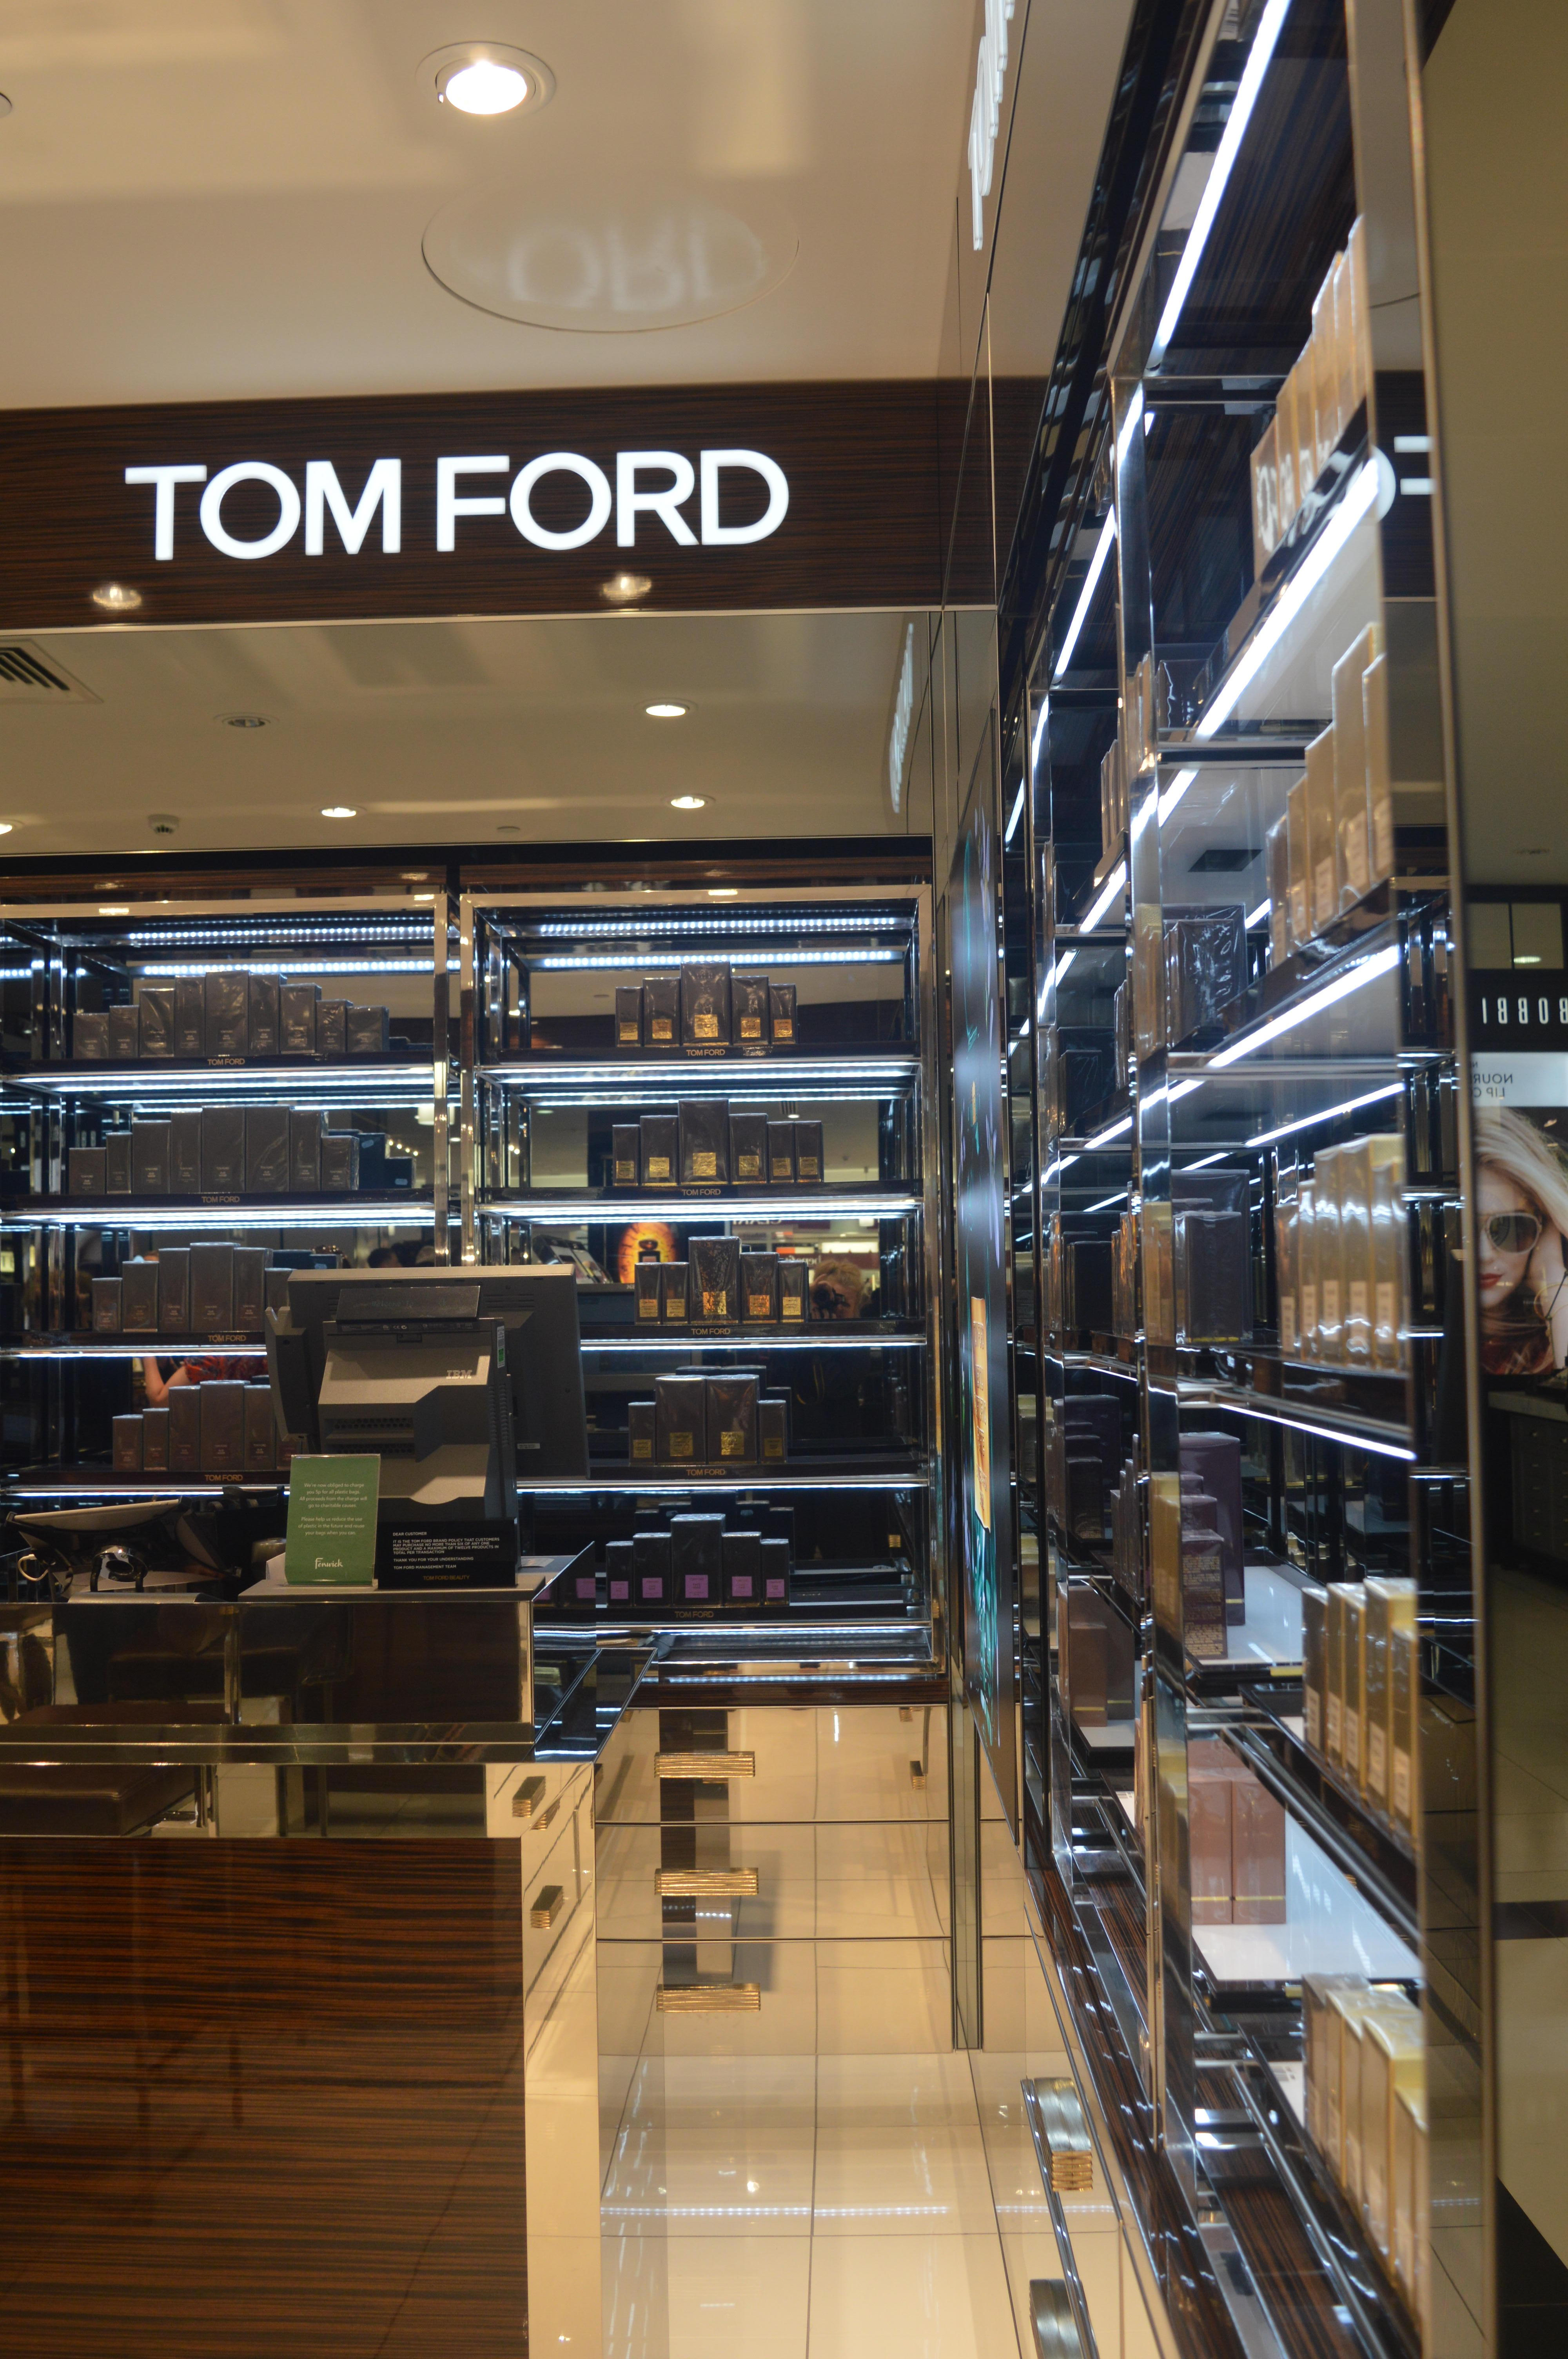 tom-ford-counter-fenwick-newcastle-beauty-blogger-event-beauty-week